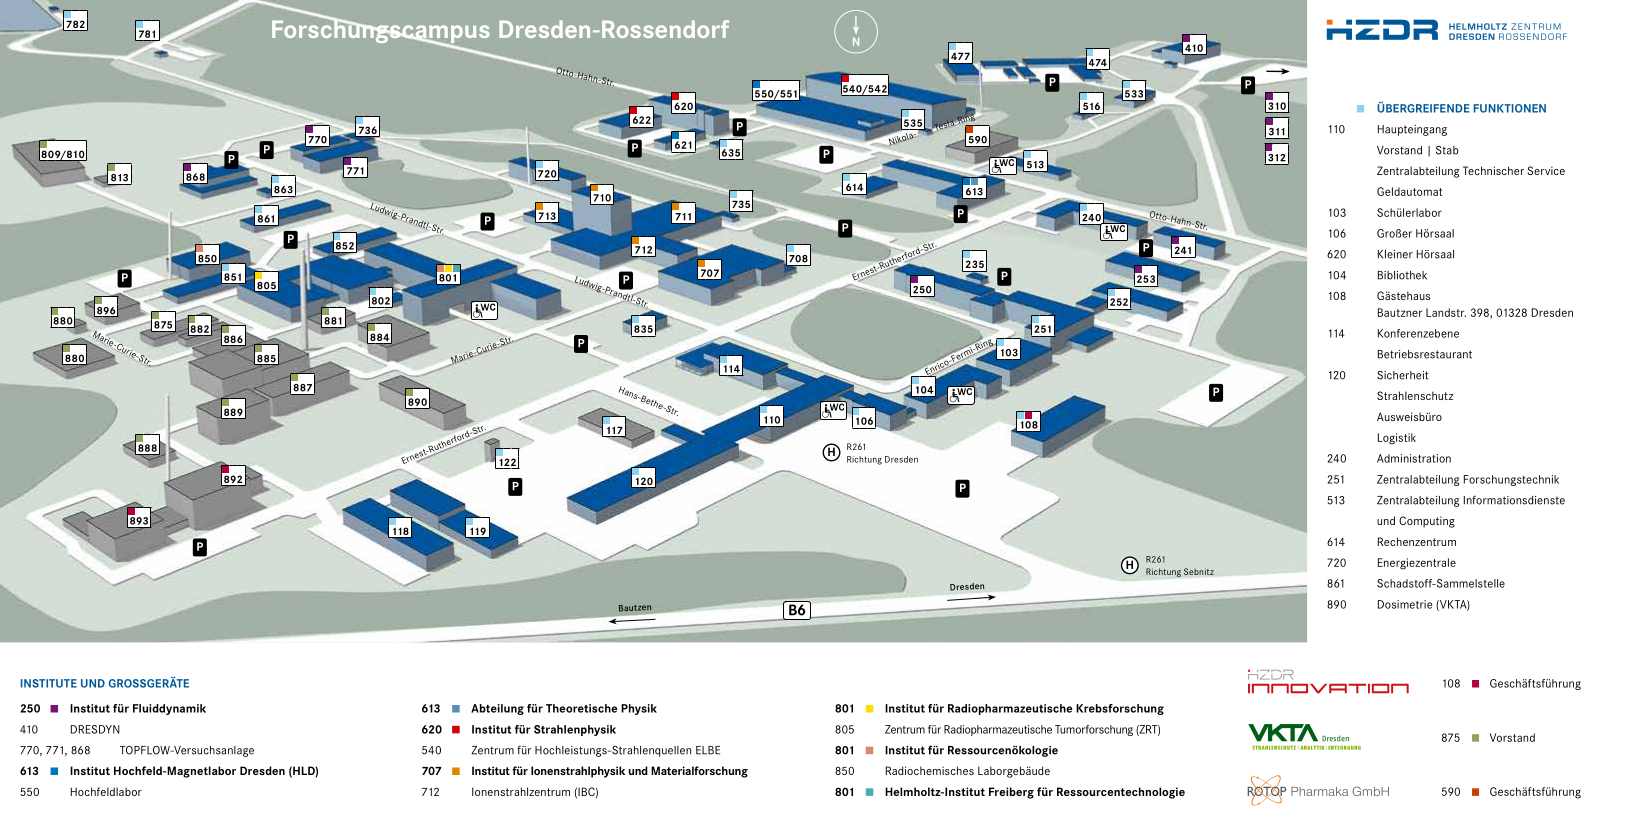 Siteplan HZDR (English/German)